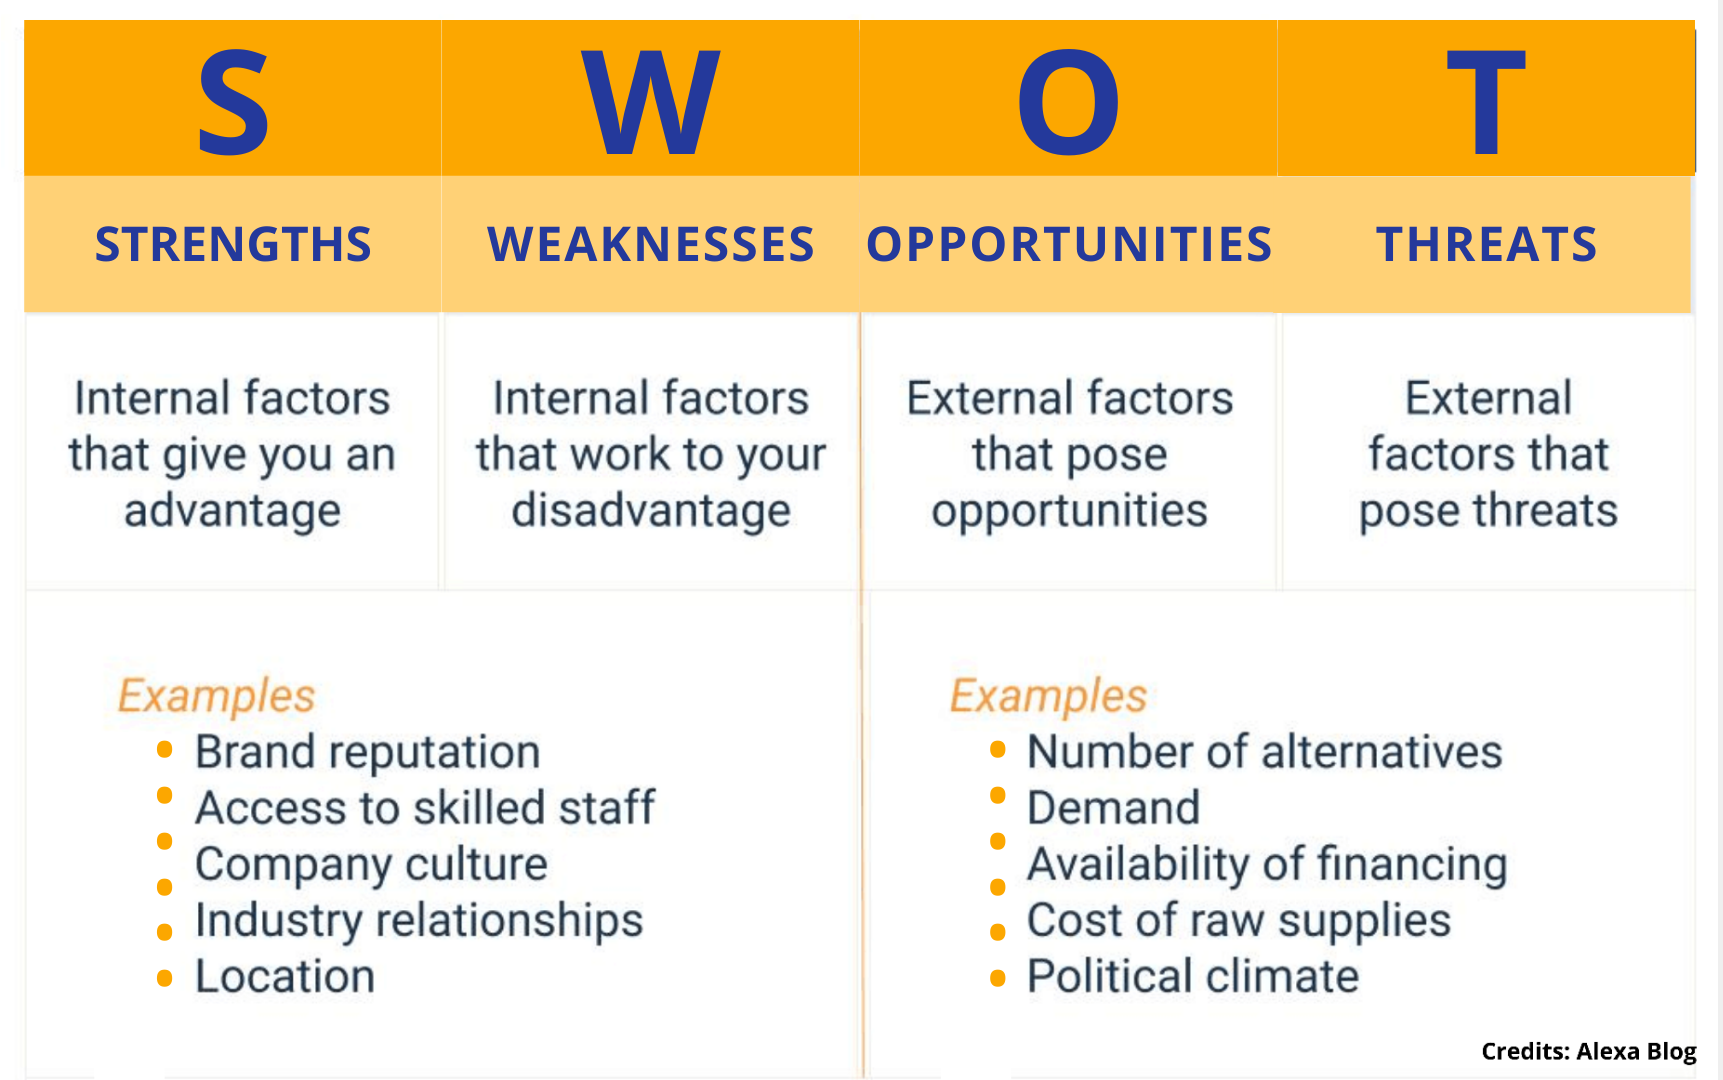 SWOT Analysis - Competitor Research